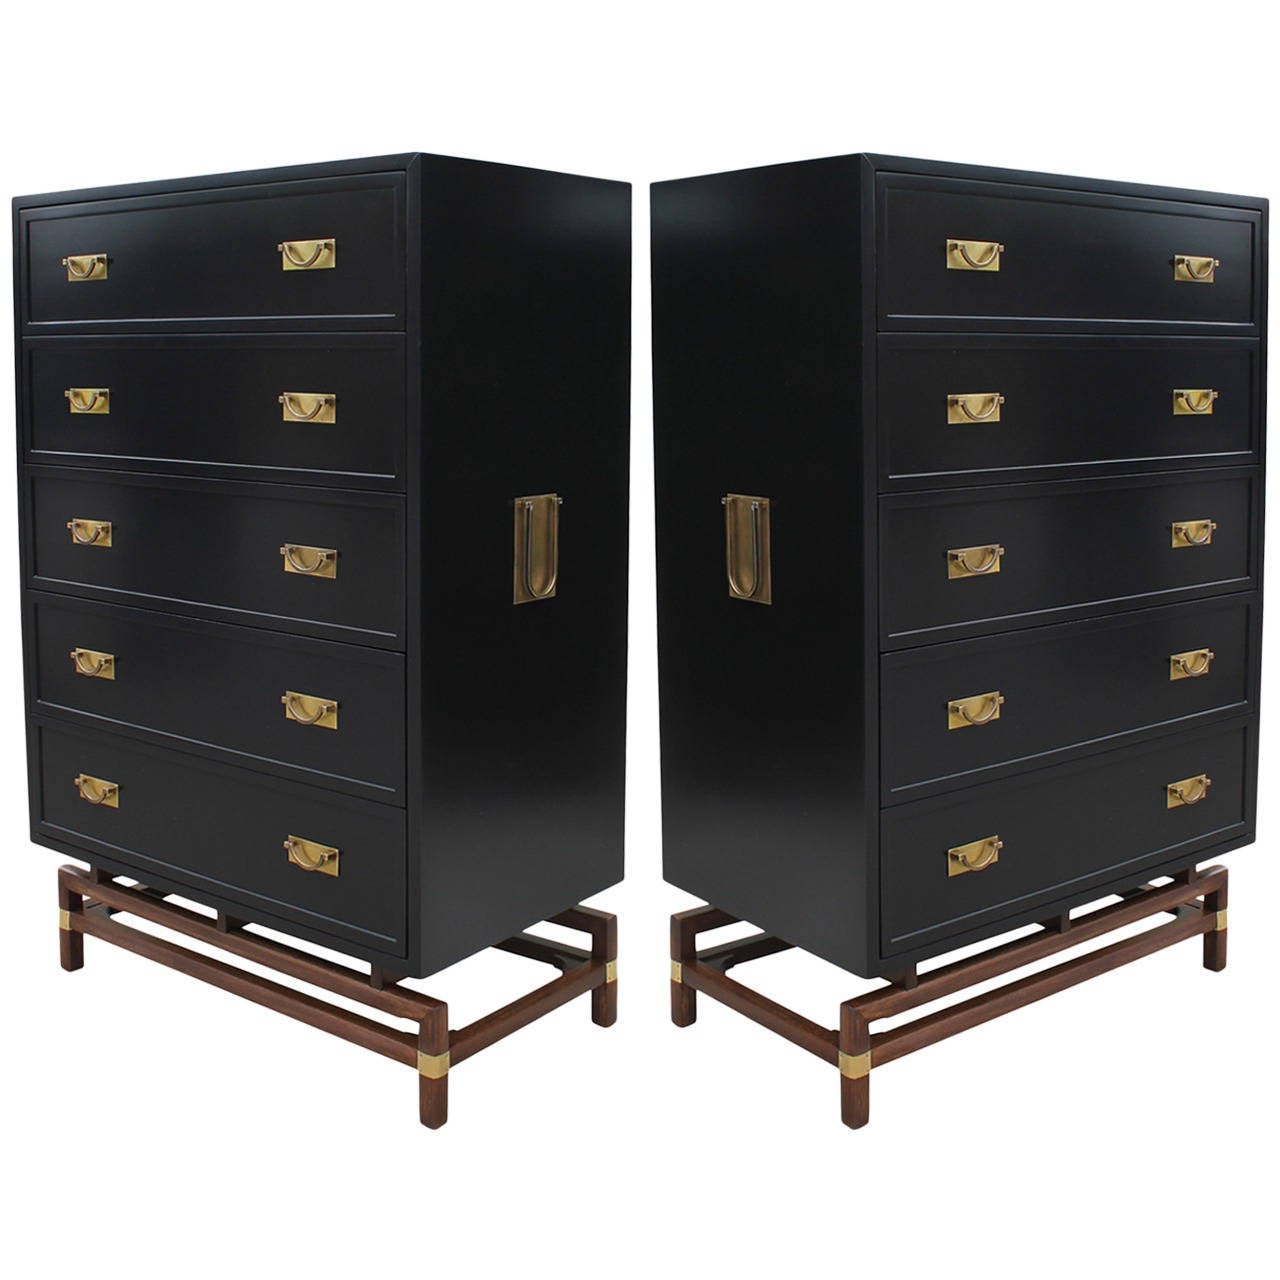 Impeccable Pair Of Twin Black Lacquer And Brass Campaign